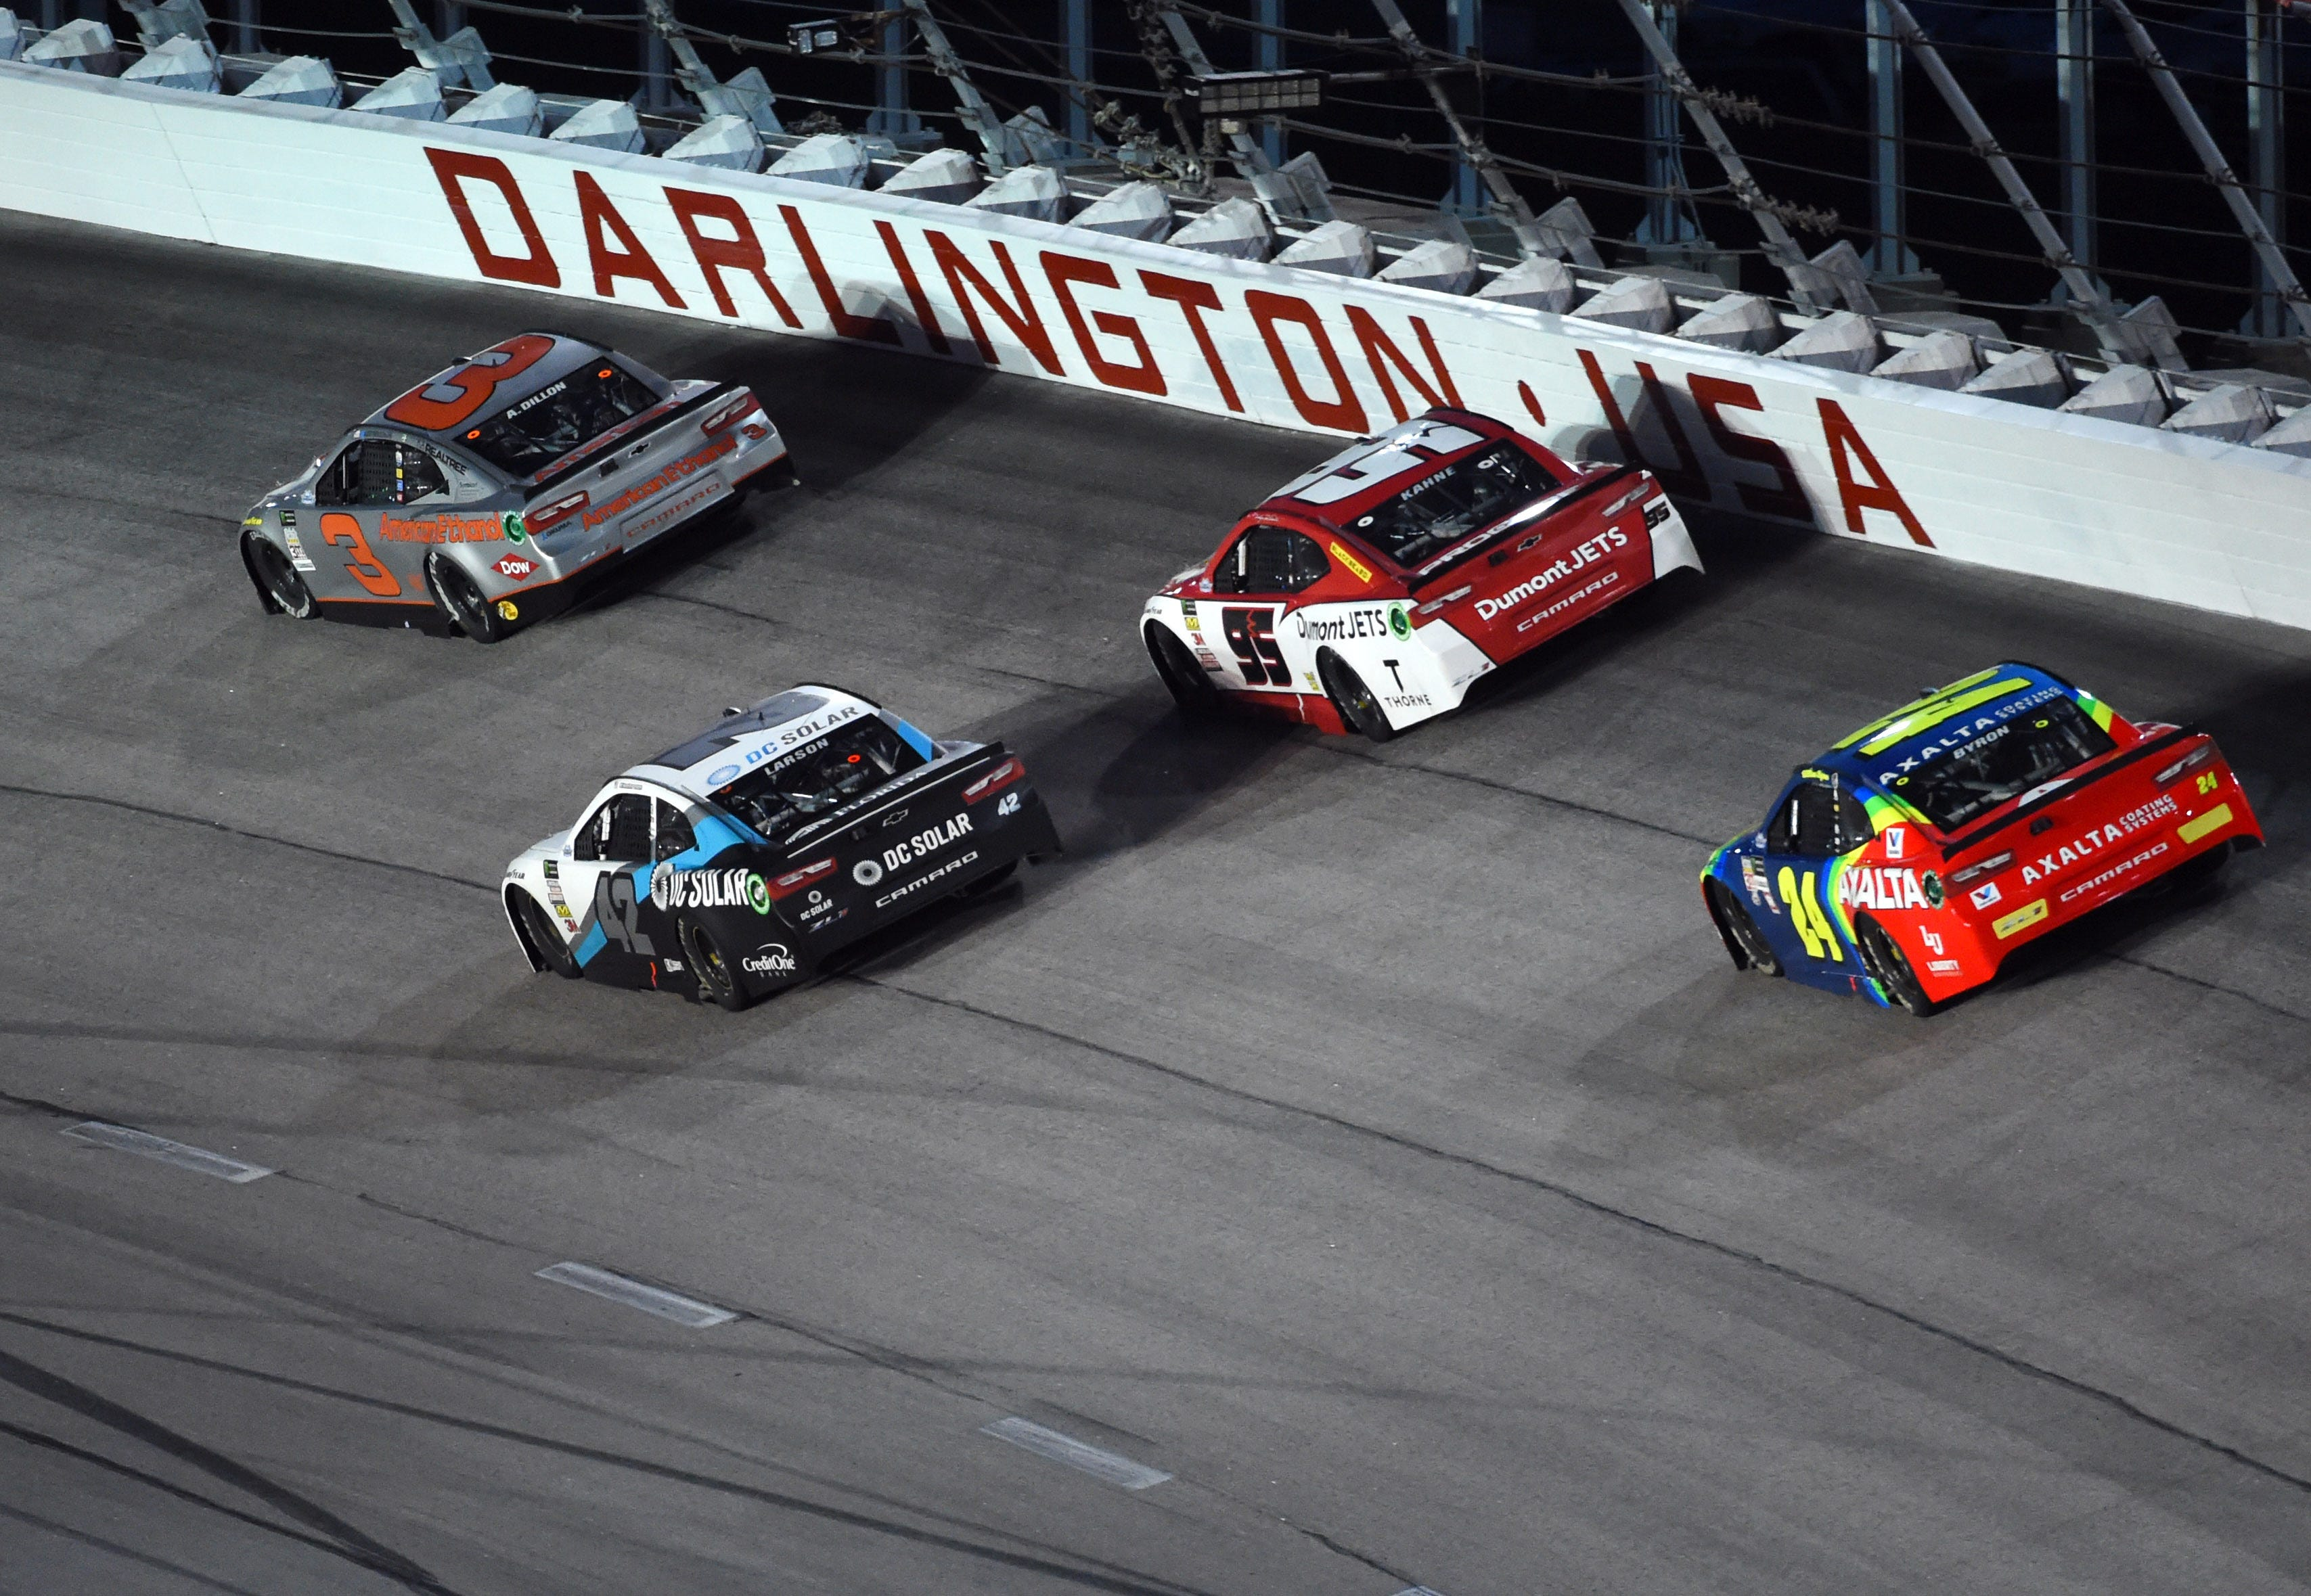 Opinion: Racing returns as NASCAR breathes life back into sports world